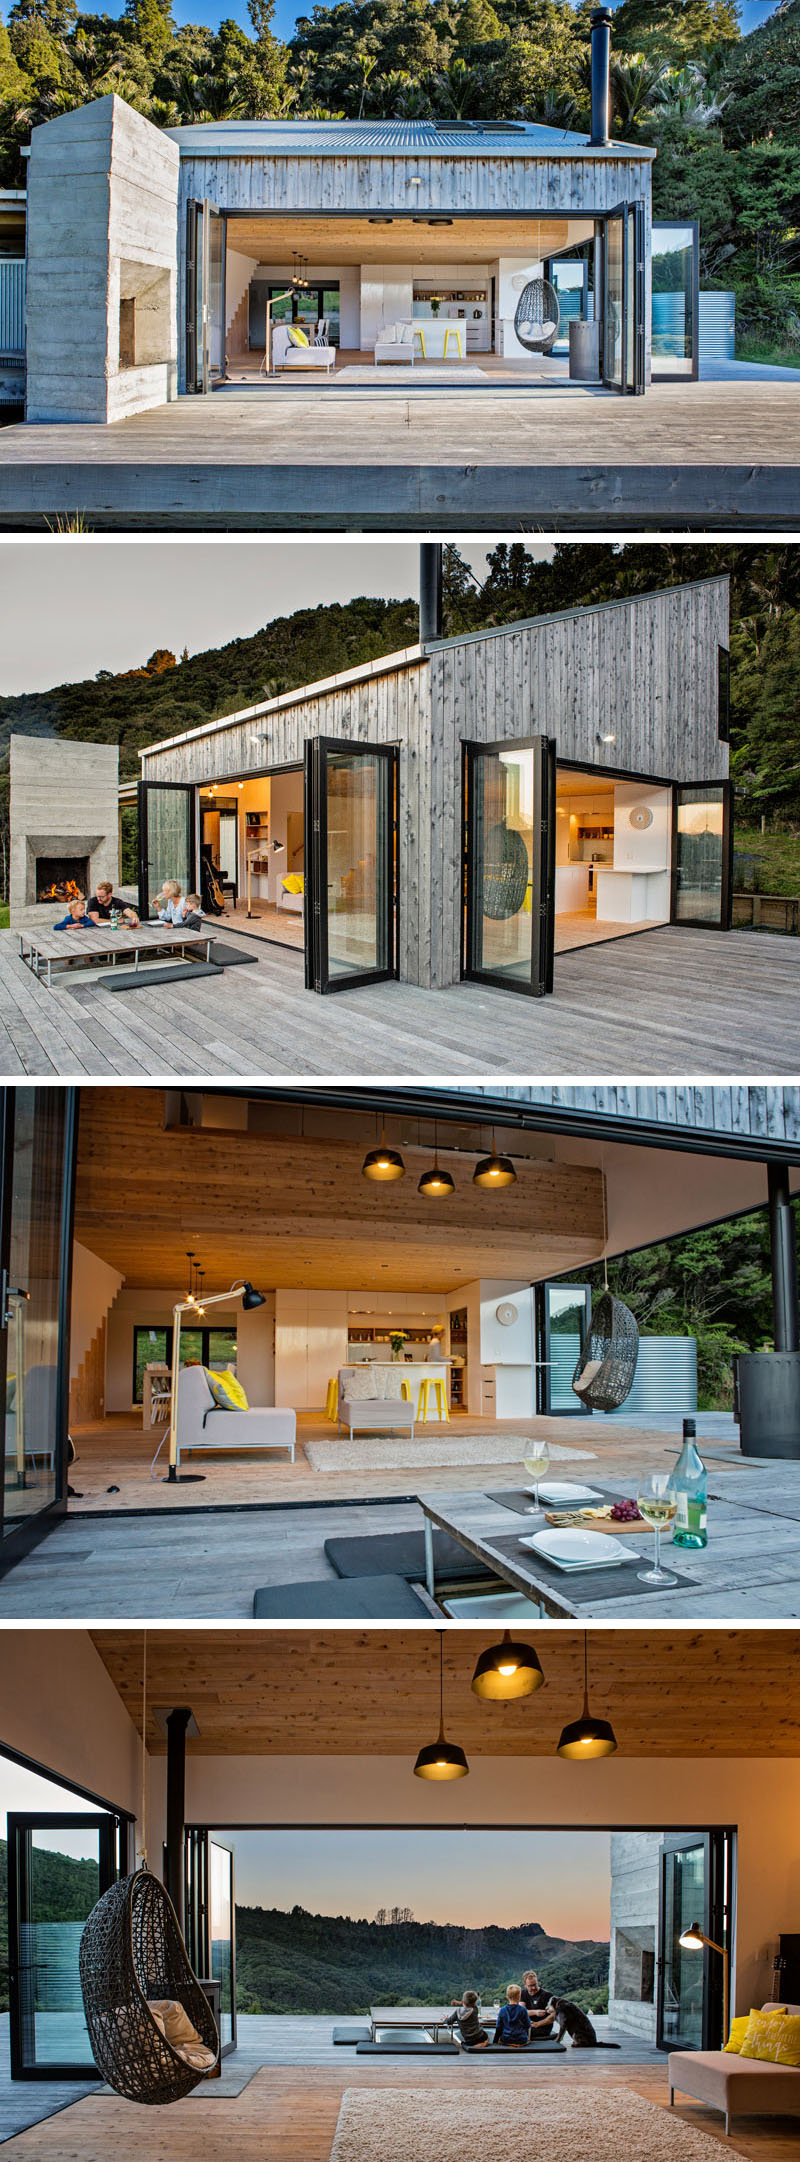 e0f20c3e0dcea5c3f9ac3fad30e71a12 - Get Small House Design New Zealand  PNG